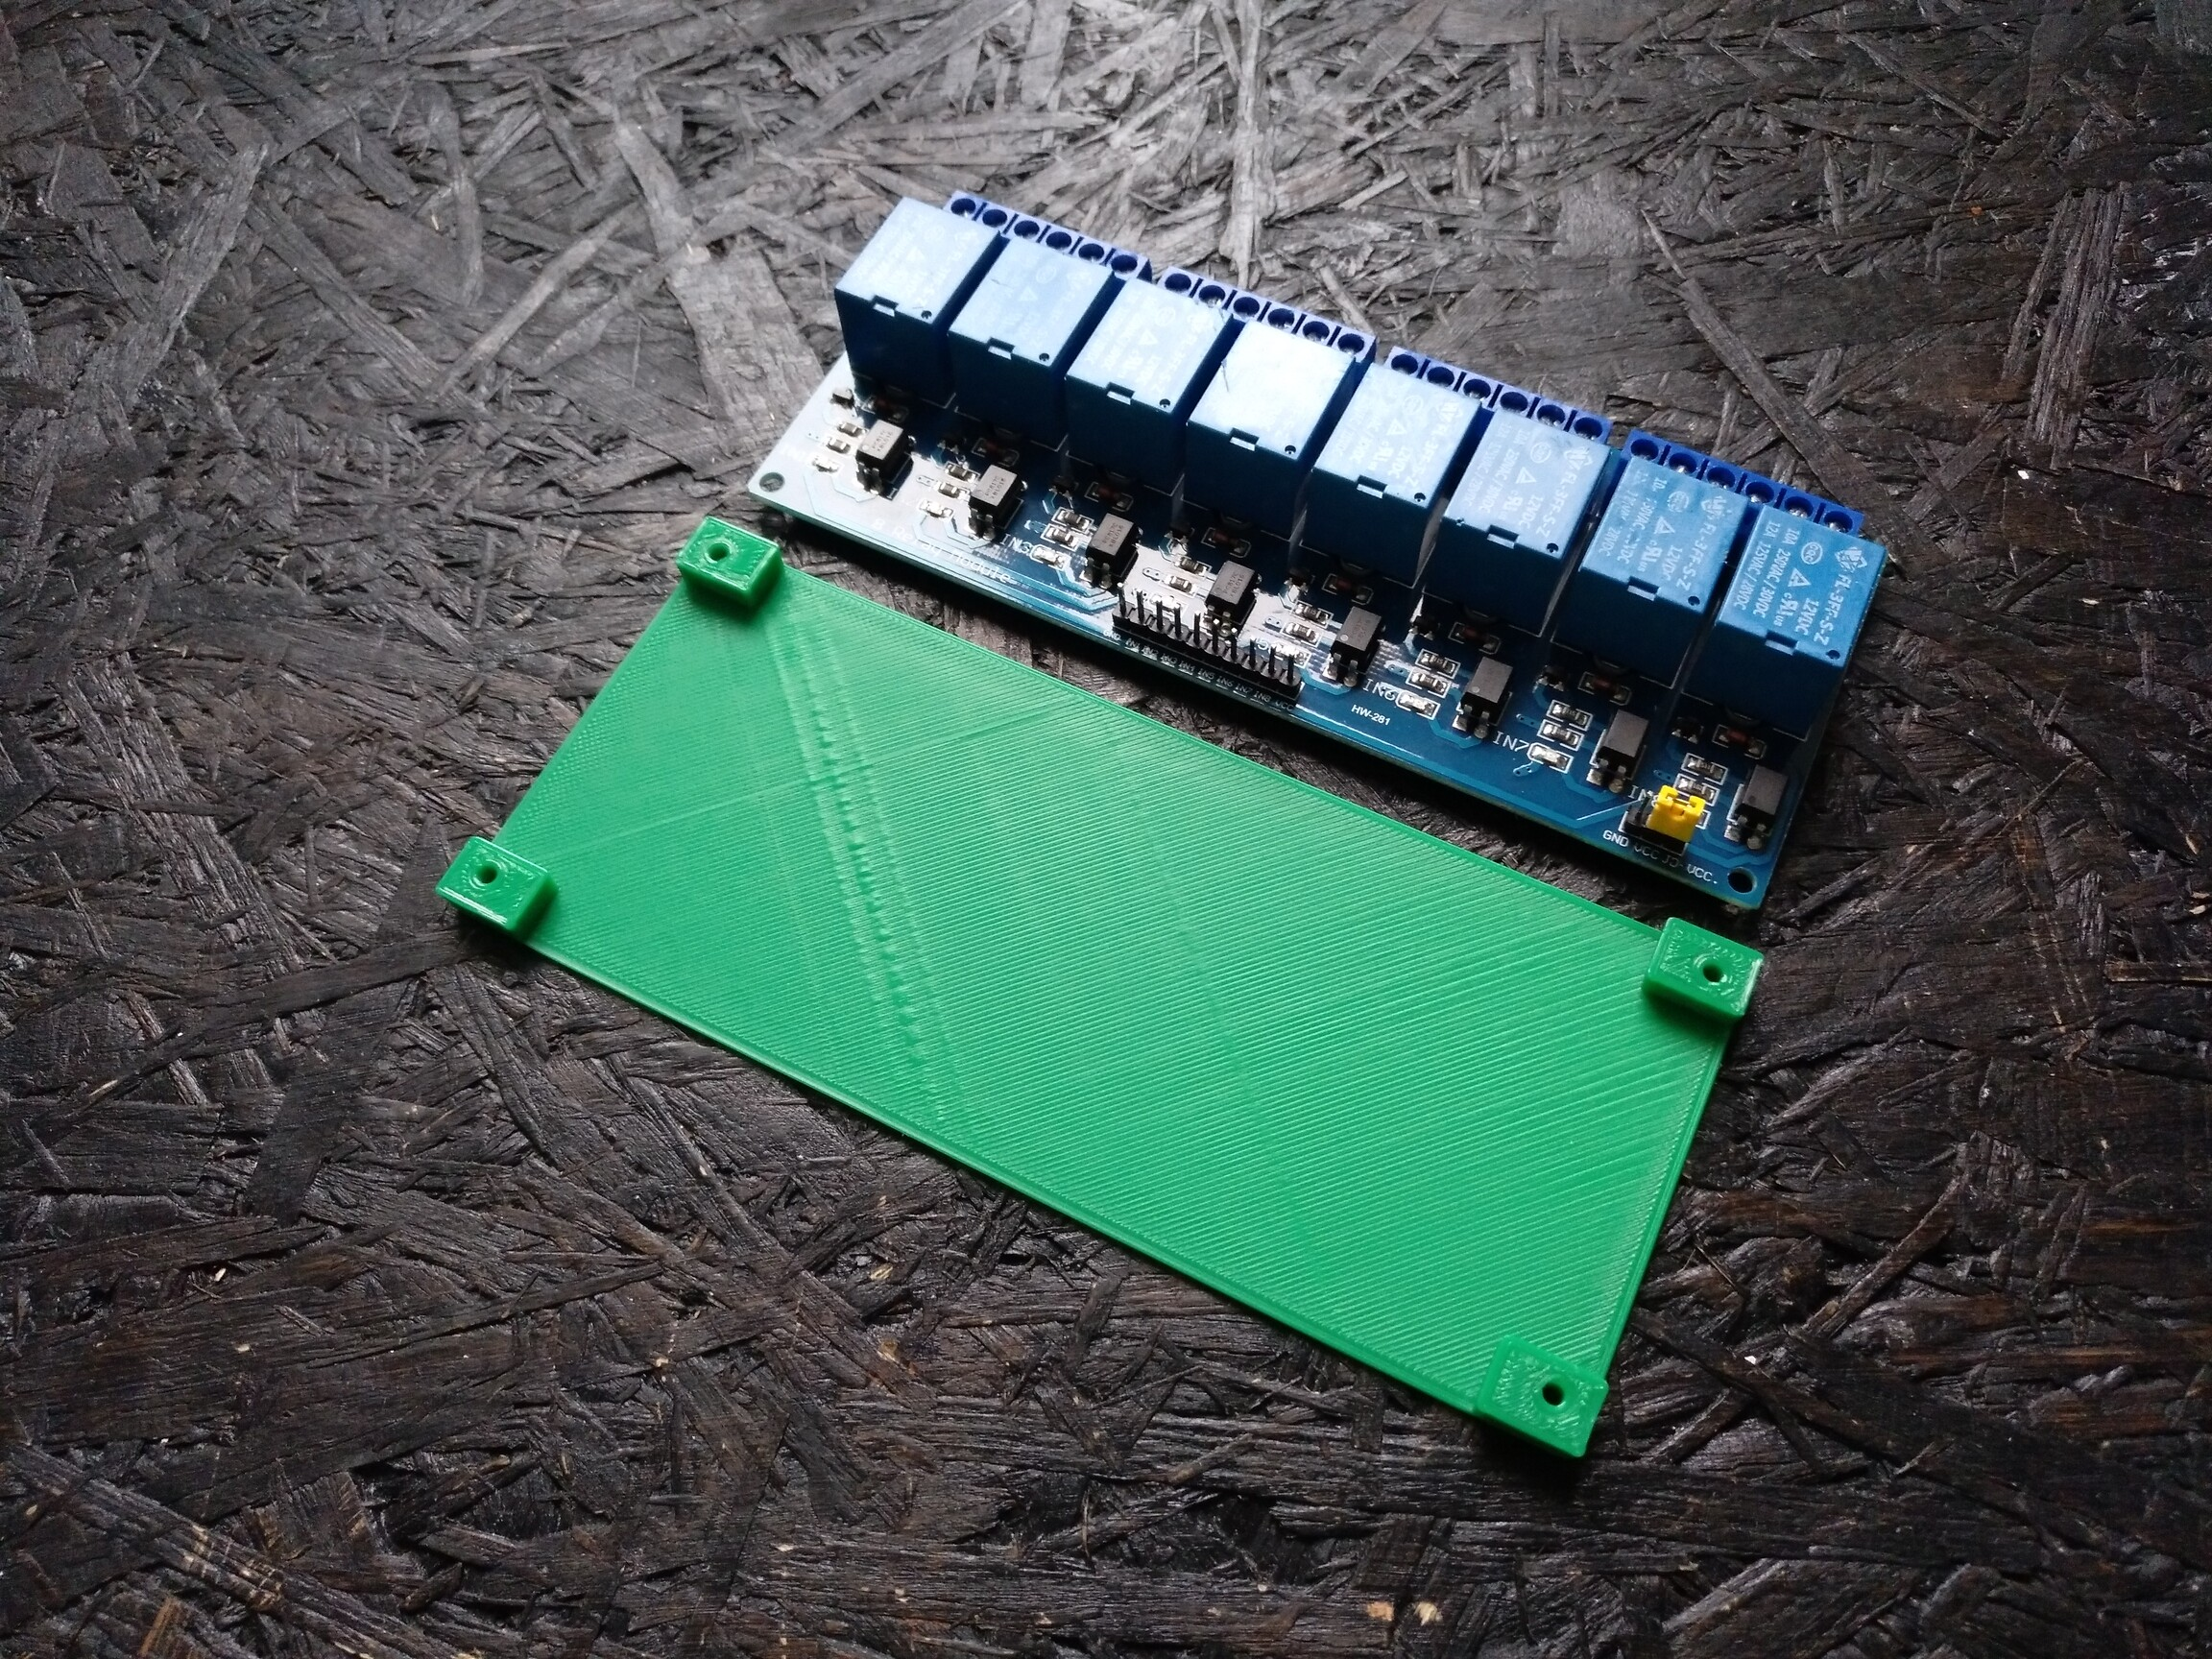 3D-printed relay module holder